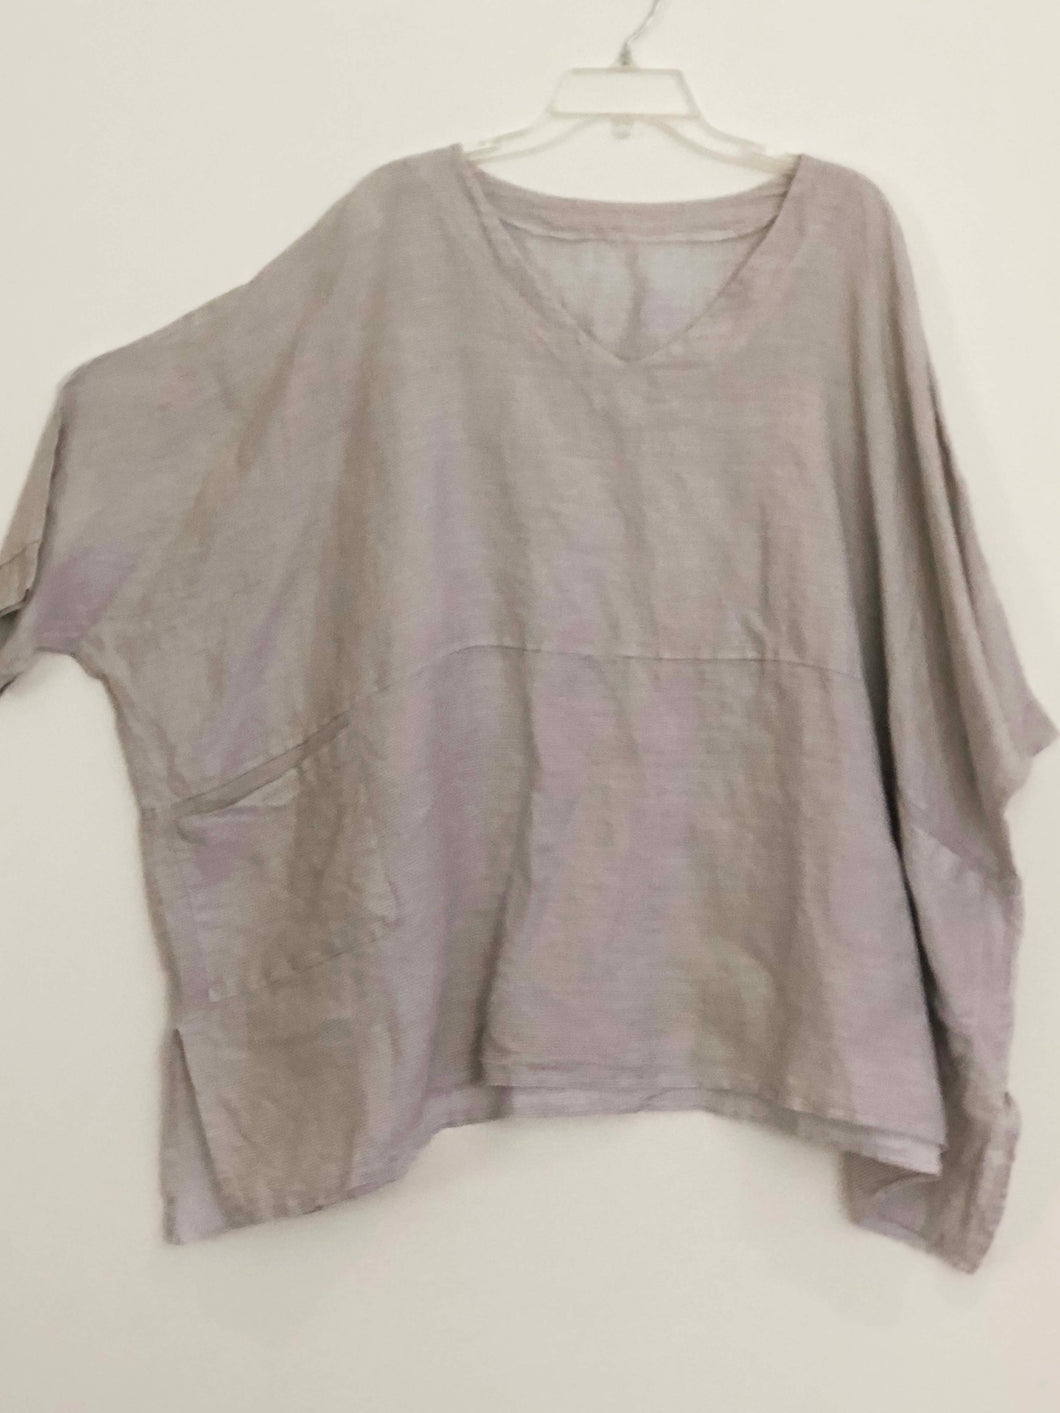 Imakokuu tunic lagenlook Gray artsy designer art to wear upscale Linen One Size Plus 1X 2X 3X Quirky